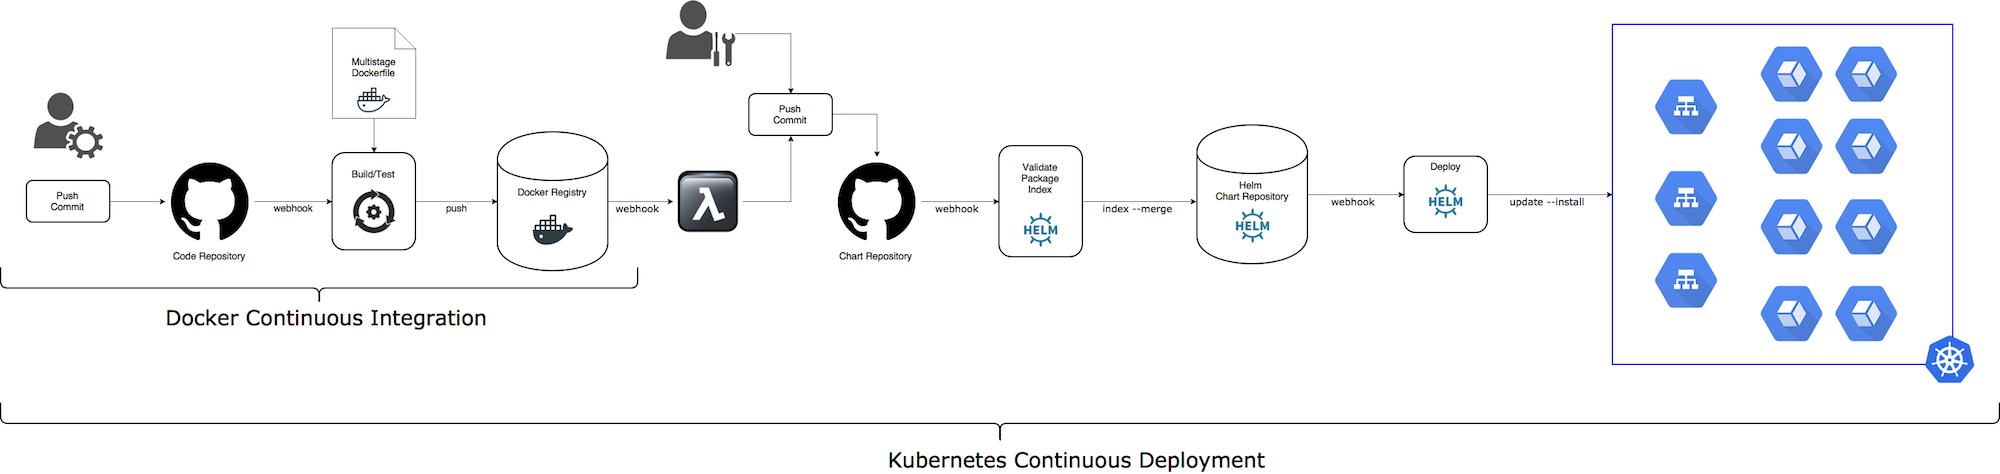 Kubernetes Continuous Deployment